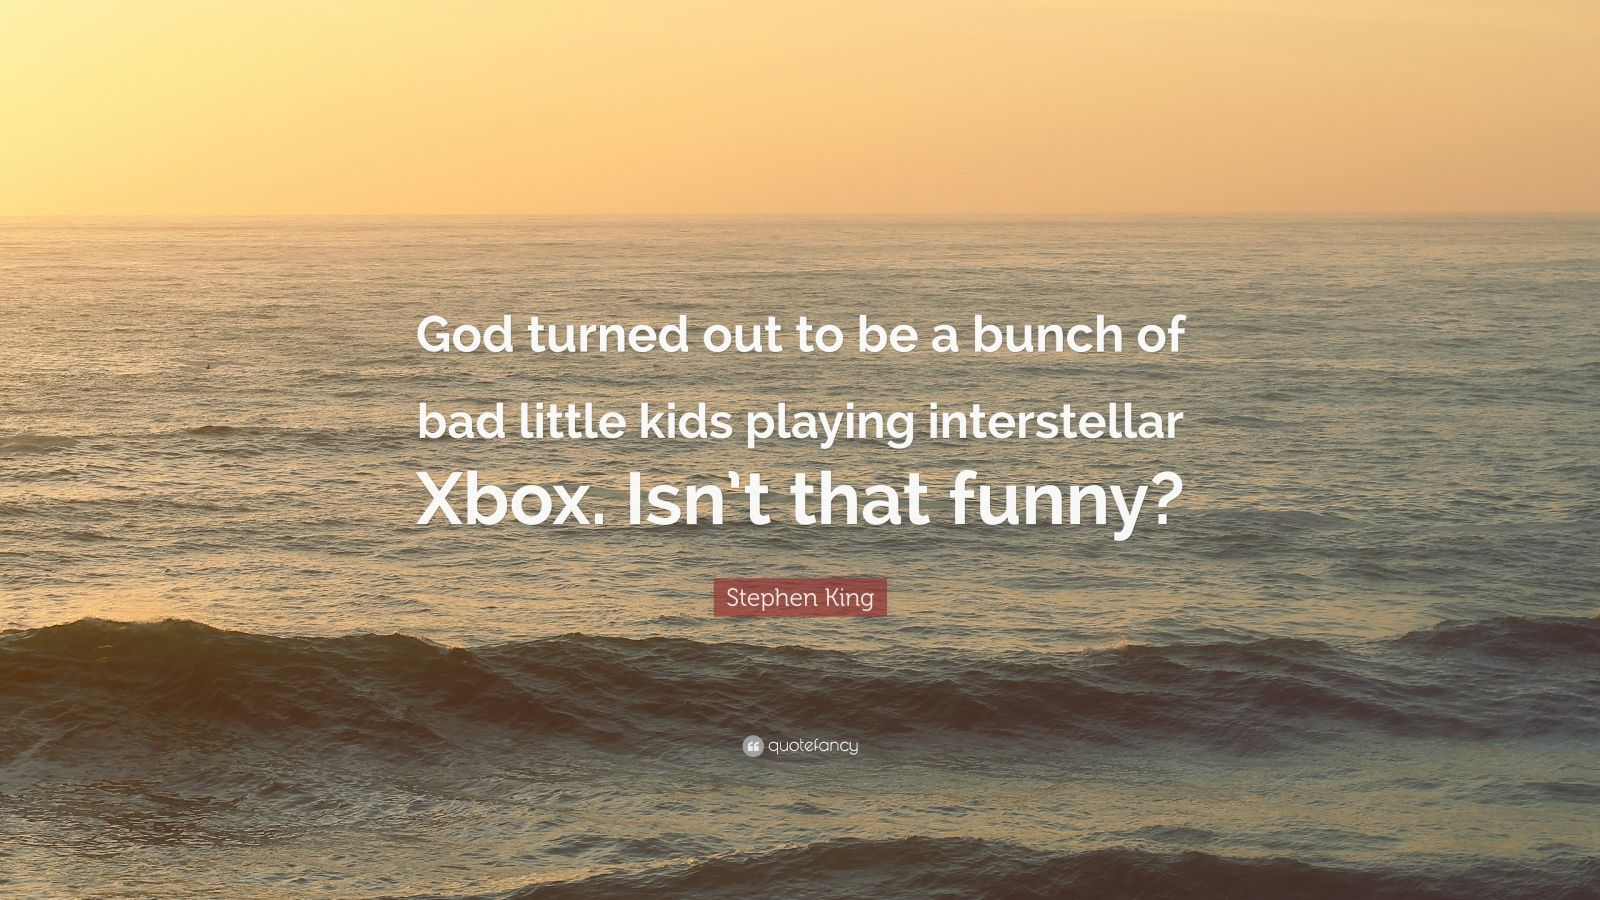 """Stephen King Quote: """"God turned out to be a bunch of bad little kids playing interstellar Xbox. Isn't that funny?"""""""